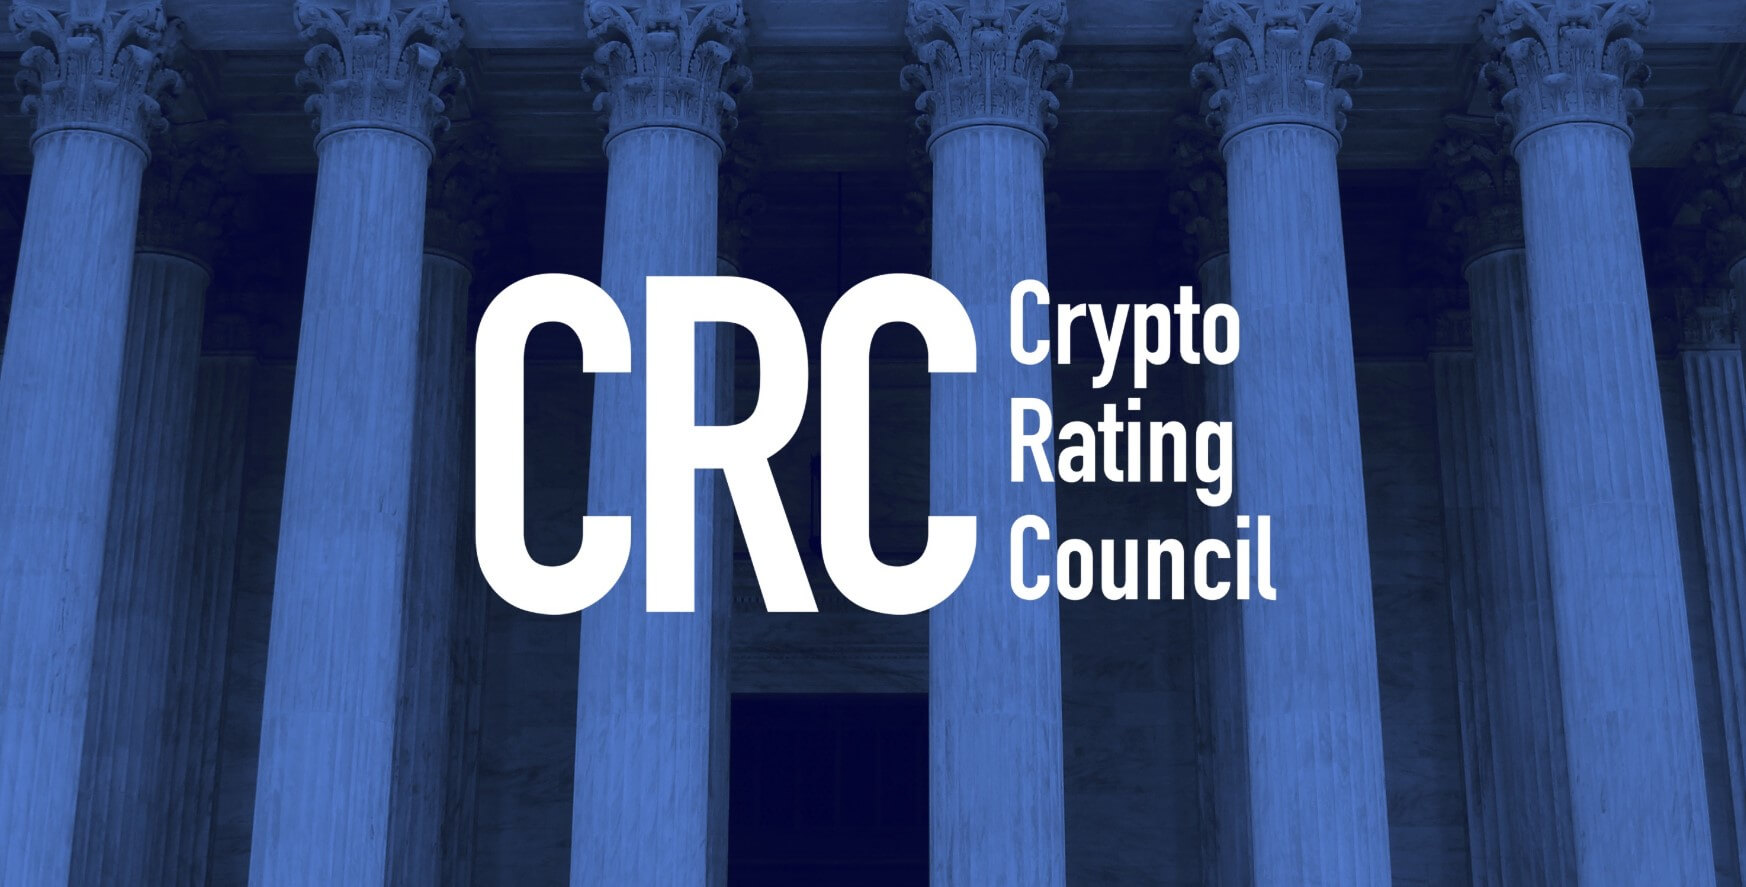 The council will decide if tokens walk and talk like a security CRC